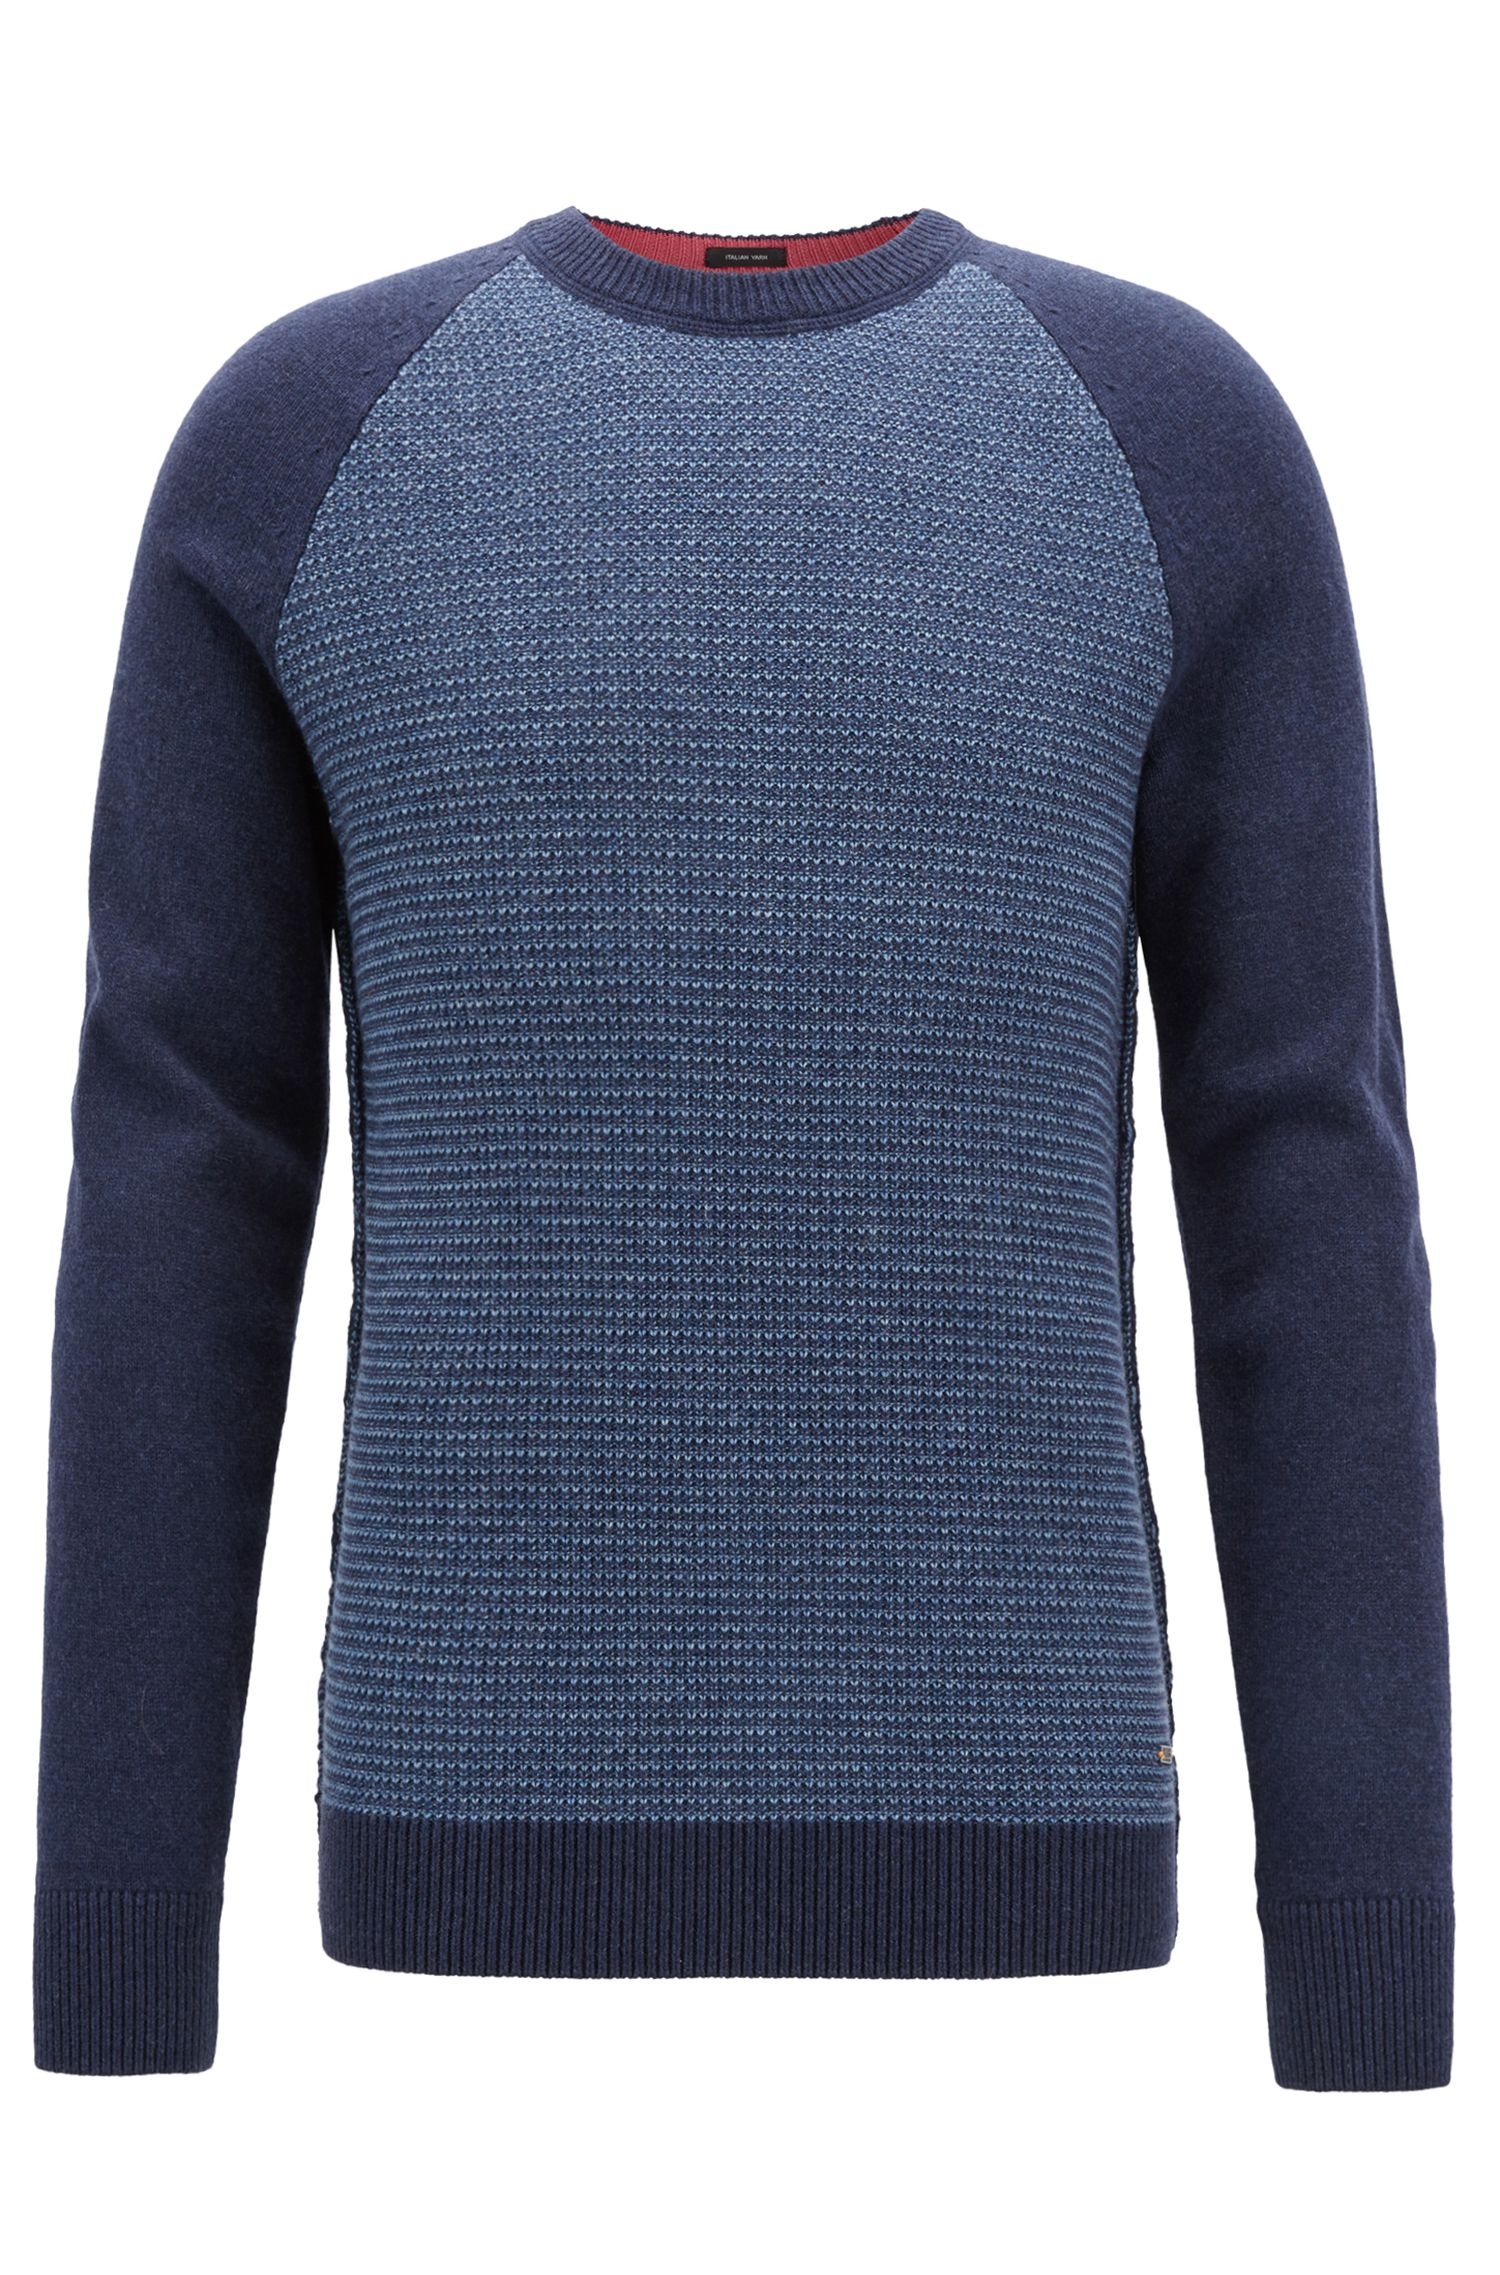 Crew-neck sweater in an Italian wool-cotton blend